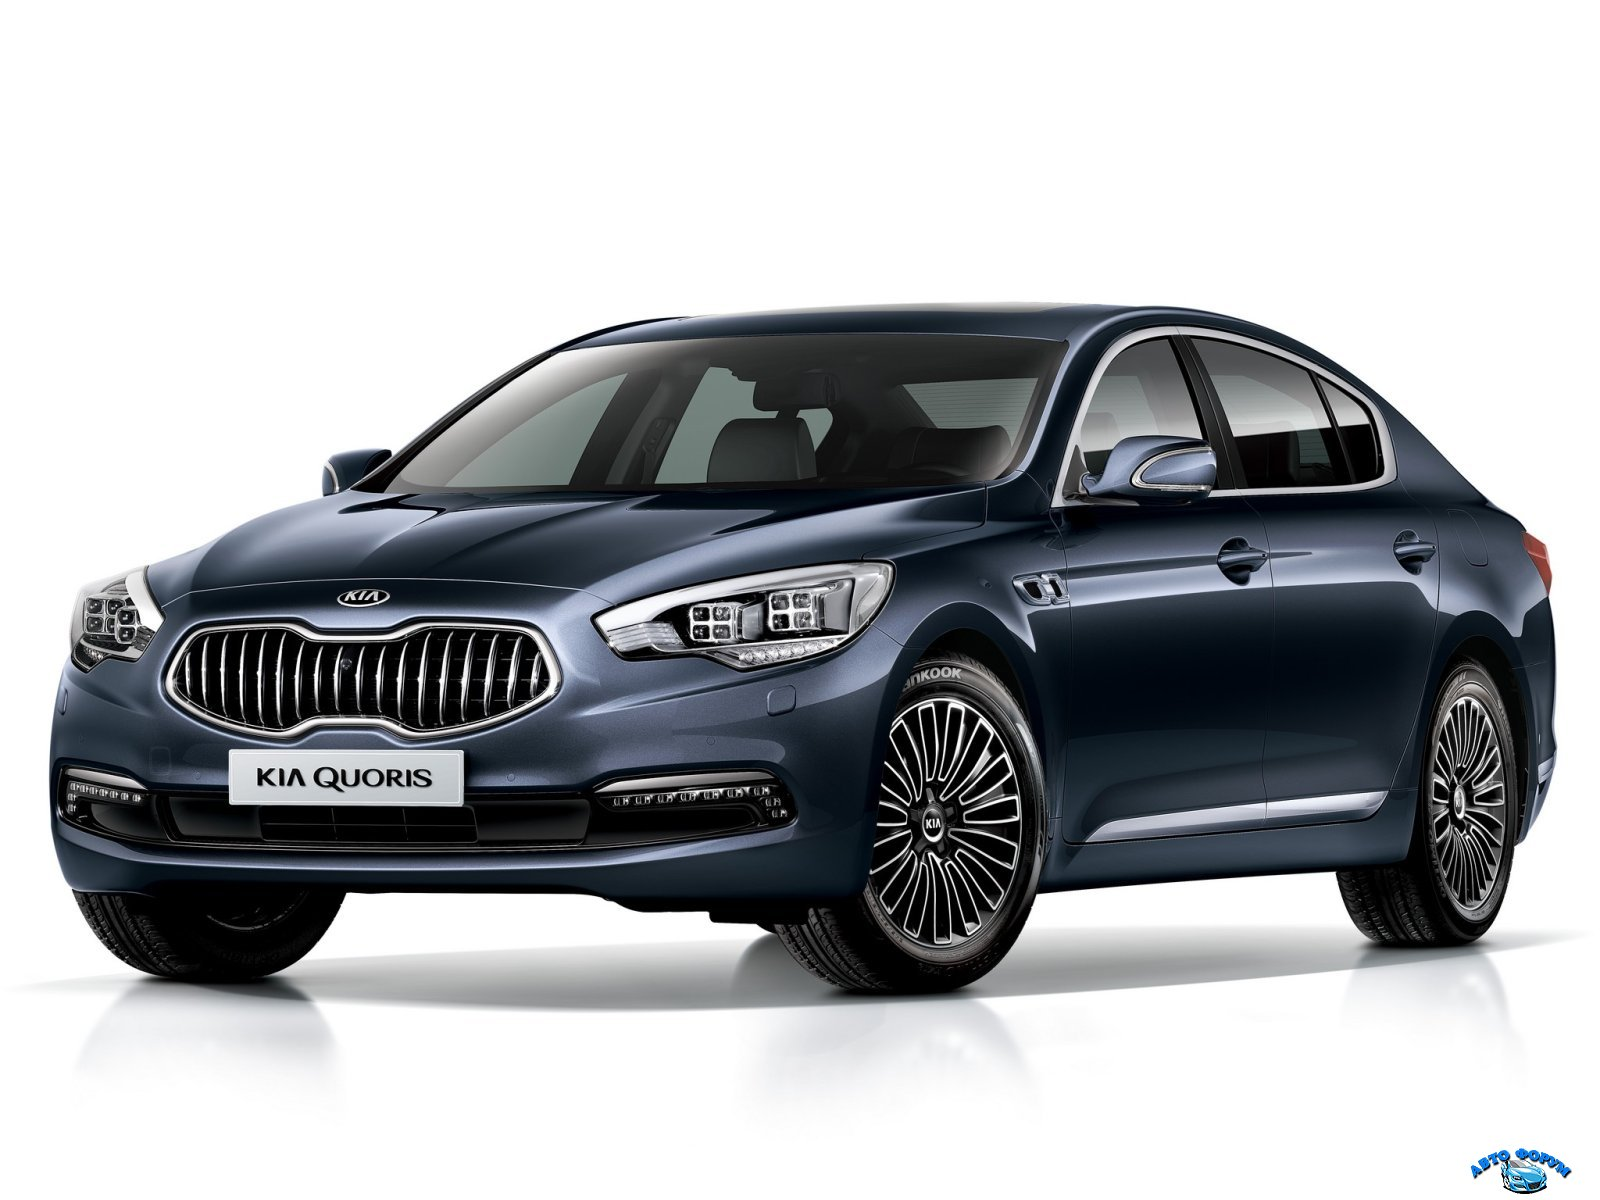 KIA_Quoris_Sedan_2012.jpg